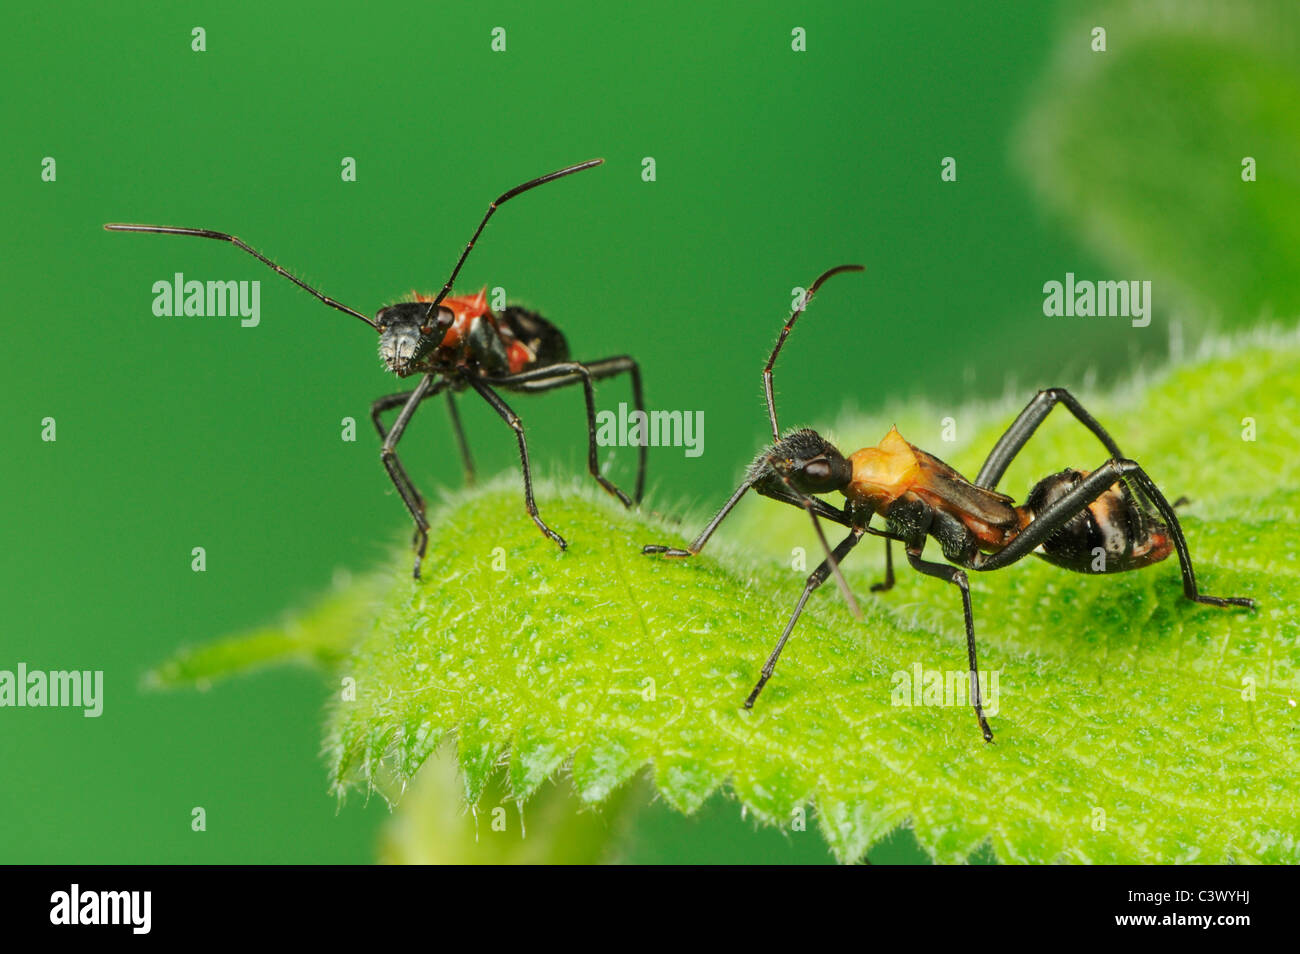 Broad-headed Bug (Hyalymenus tarsatus), Nymphs on leaf, ant mimicry, Comal County, Hill Country, Central Texas, - Stock Image